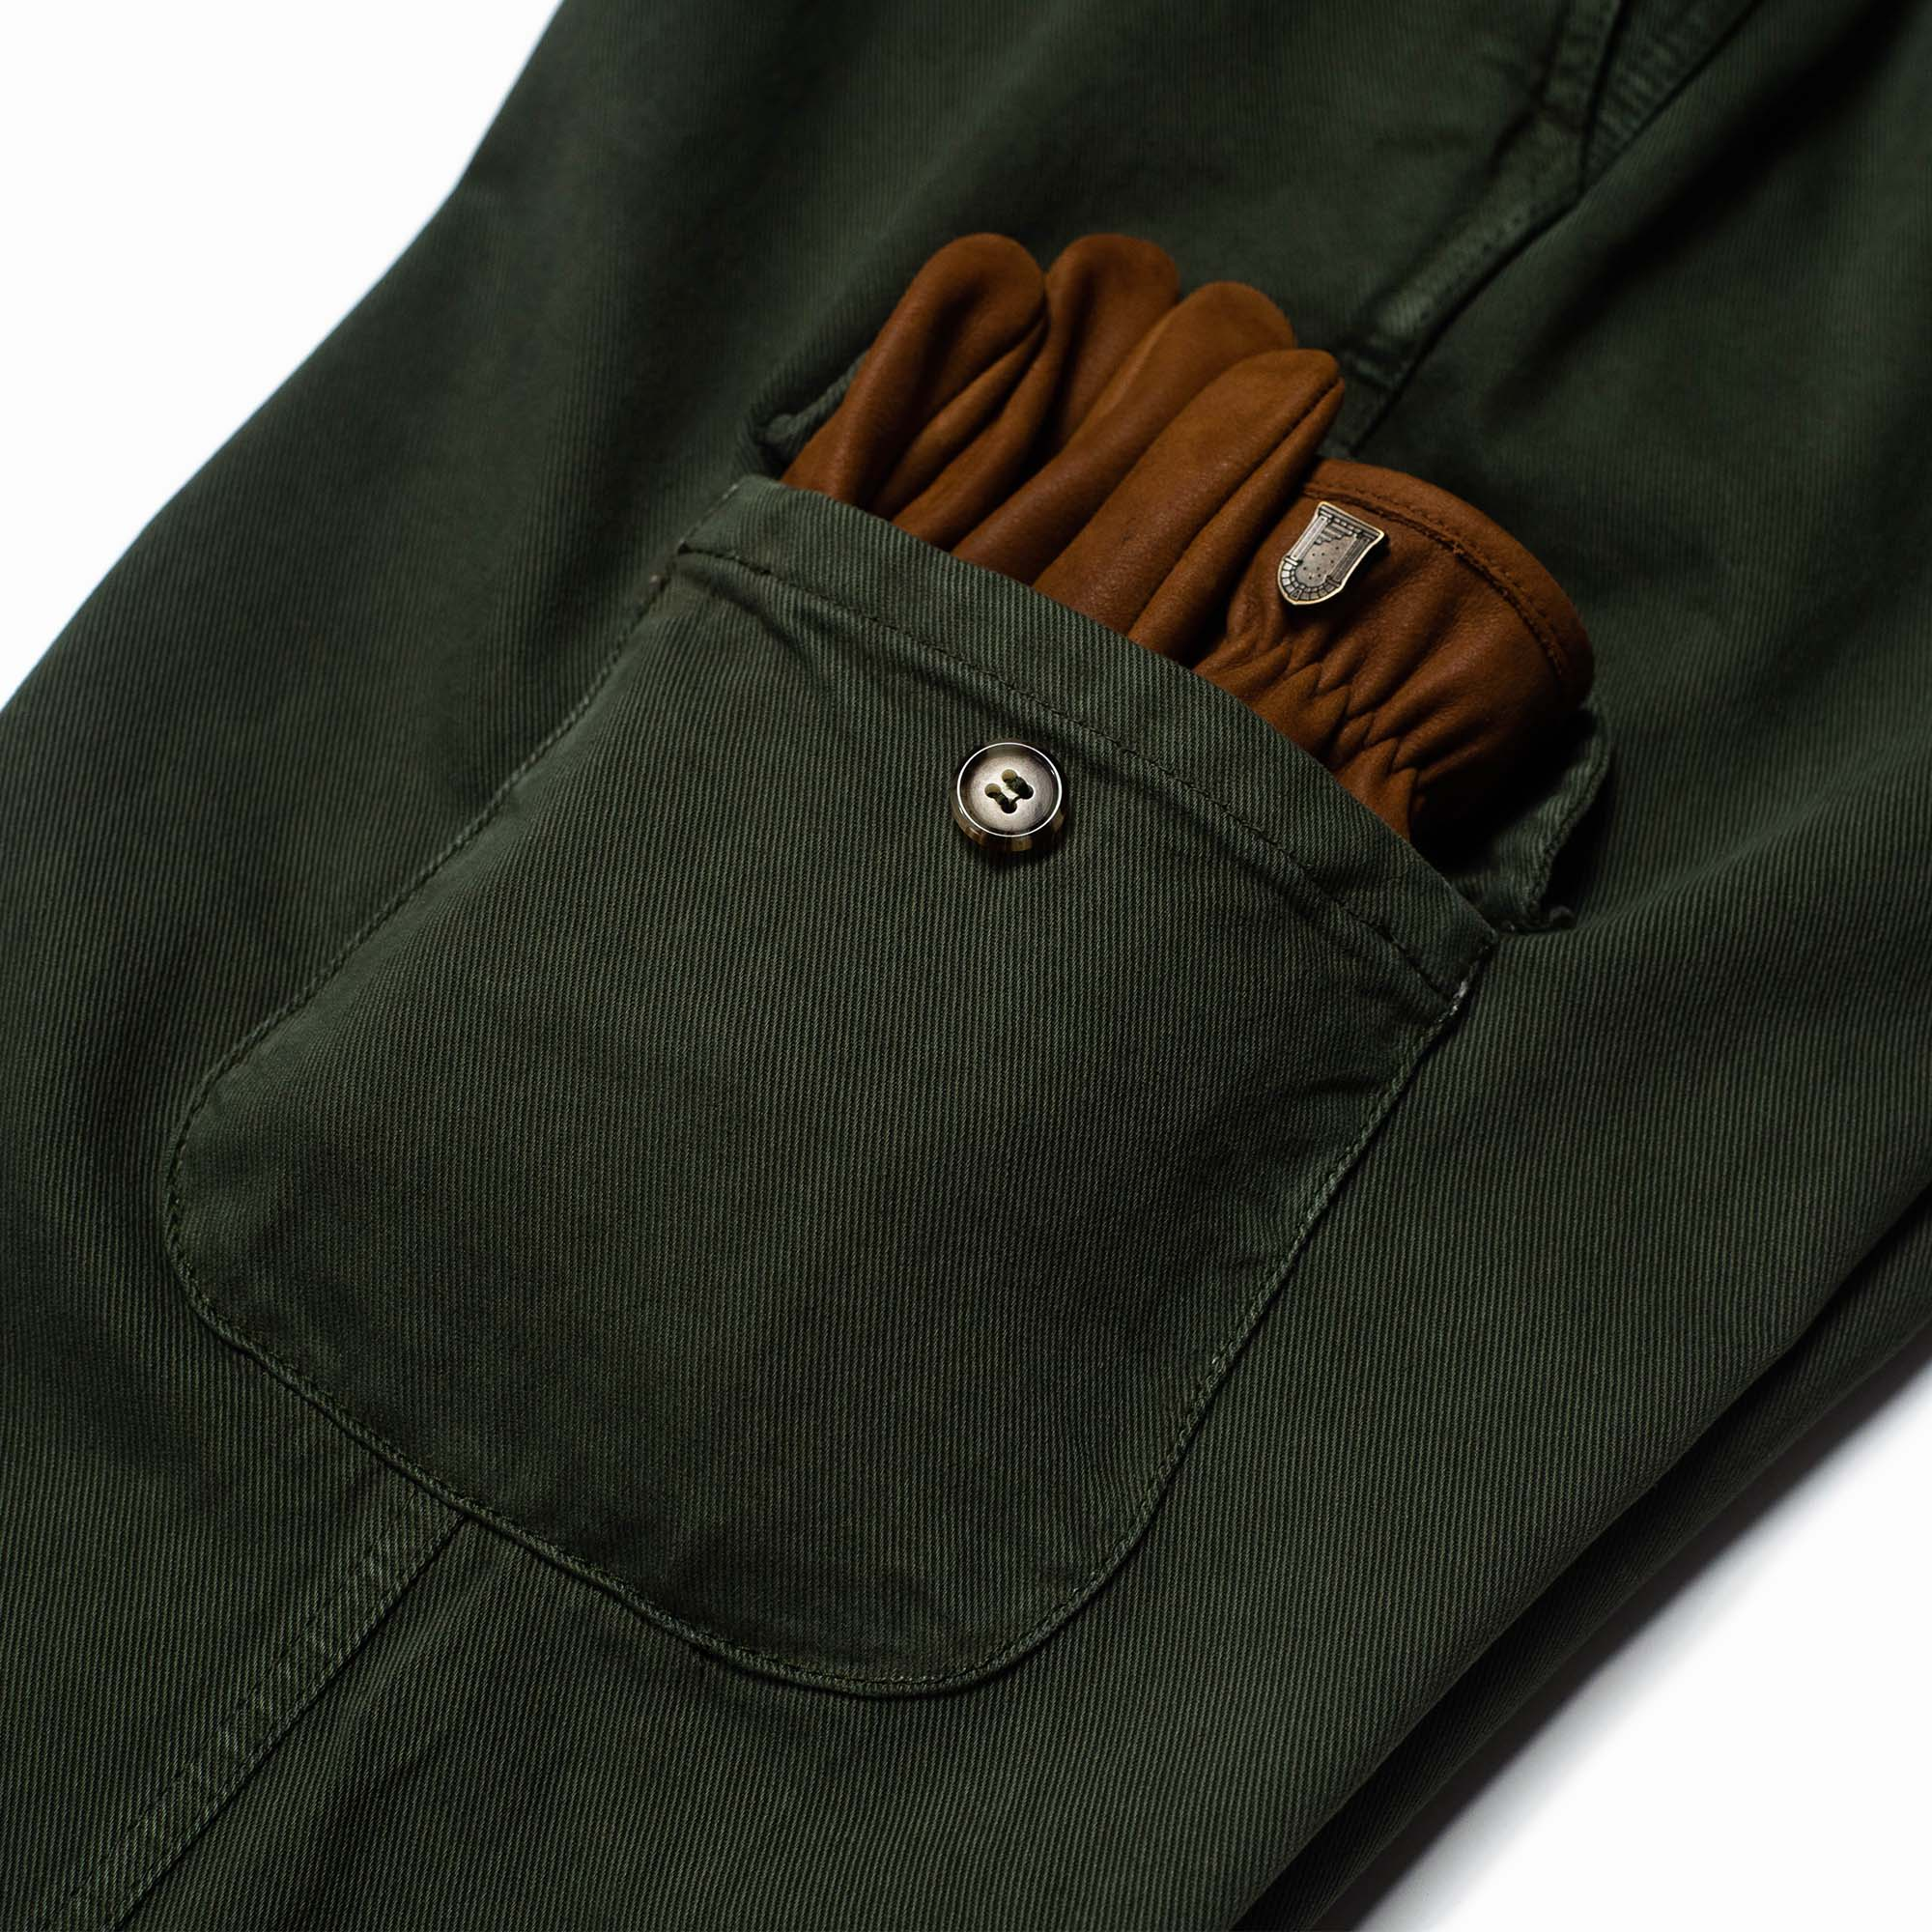 shangri-la-heritage-explorator-olive-cotton-twill-pants-still-life-cargo-pocket-gloves